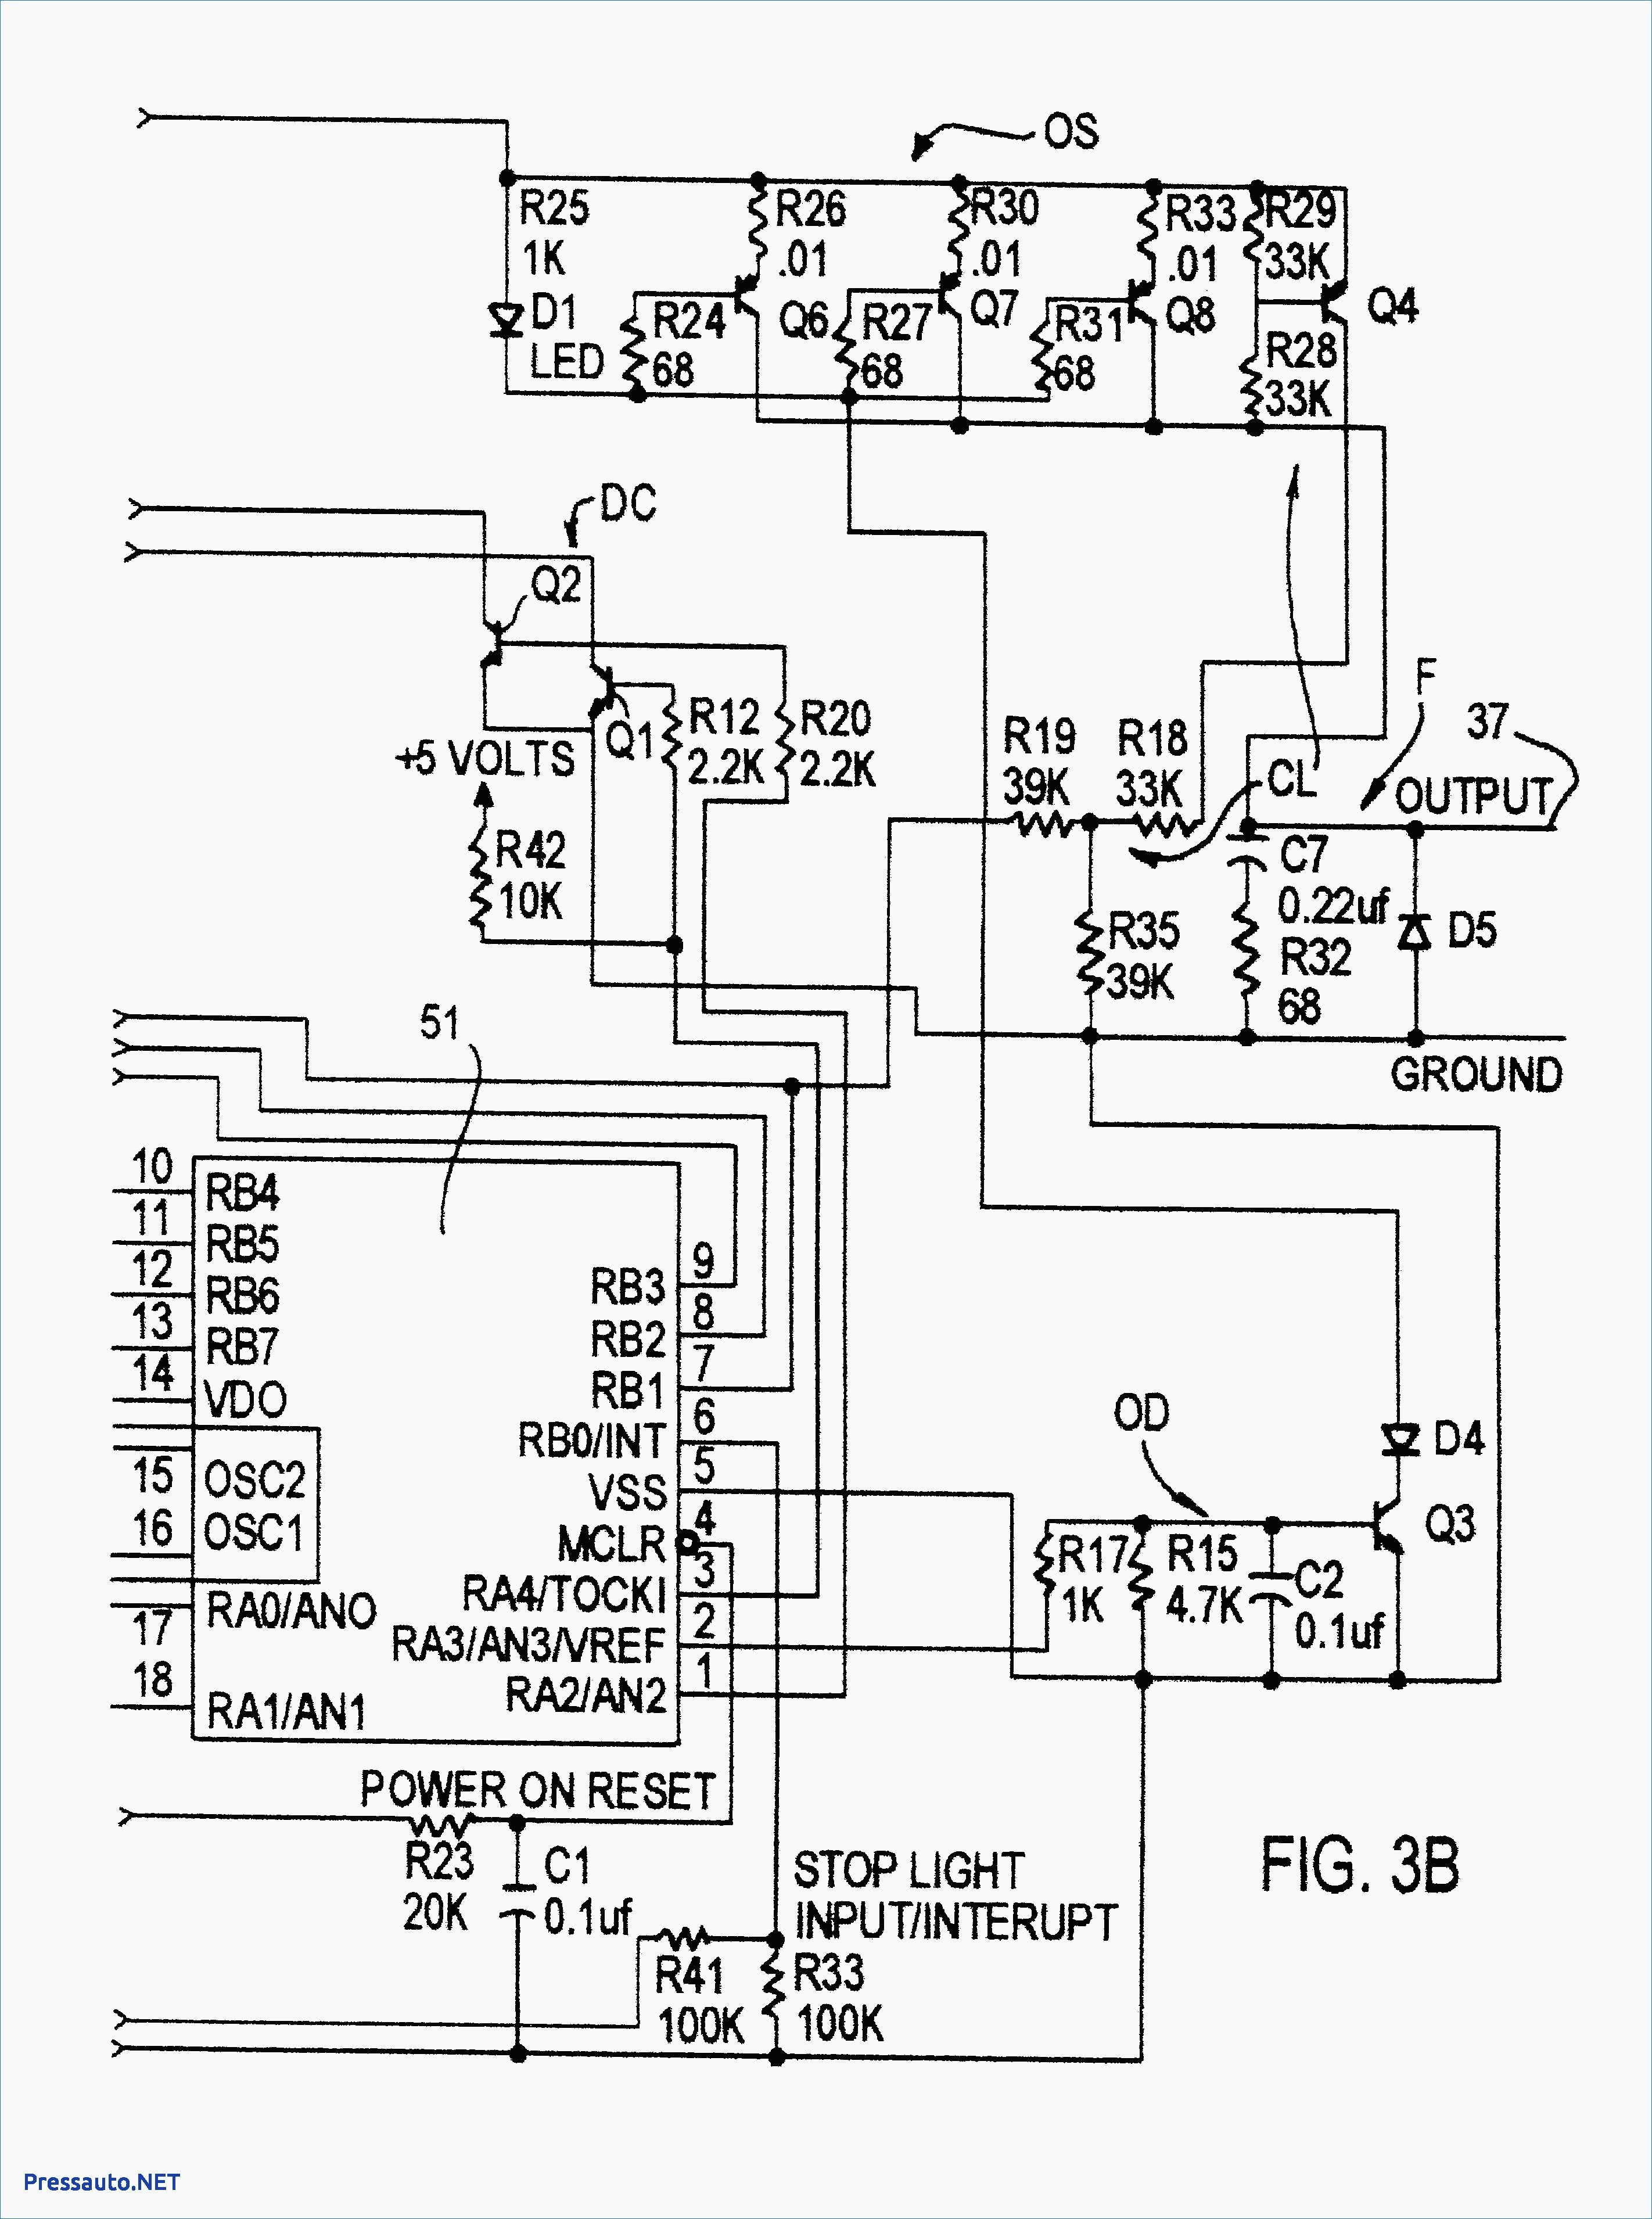 Tow Vehicle Wiring Diagram Fresh Mazda 3 Tow Wiring Mazda Auto Wiring Diagrams Instructions